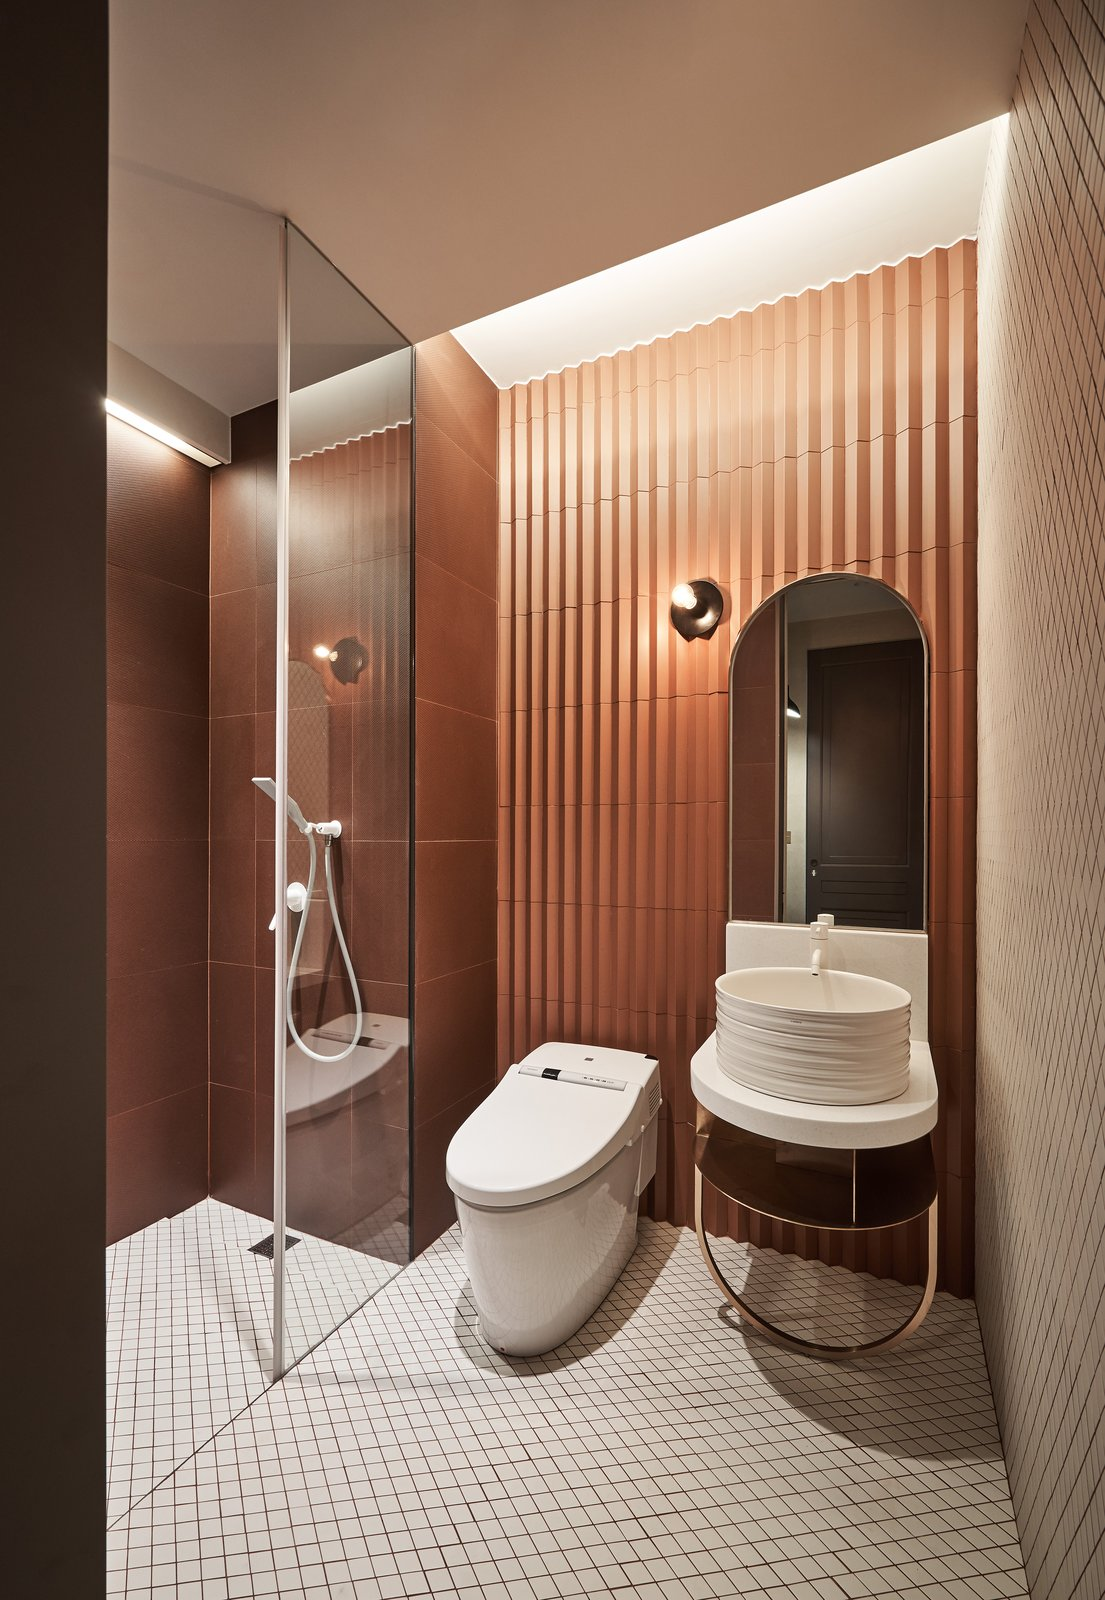 Bath Room, Porcelain Tile Floor, Vessel Sink, Open Shower, Wall Lighting, One Piece Toilet, and Corner Shower A deep vessel sink sits peacefully in this copper-hued bathroom.   Photo 14 of 25 in 25 Best Modern Bathroom Vanities For Your Home from Vintage and Industrial Elements Combine in an Updated Taiwan Apartment